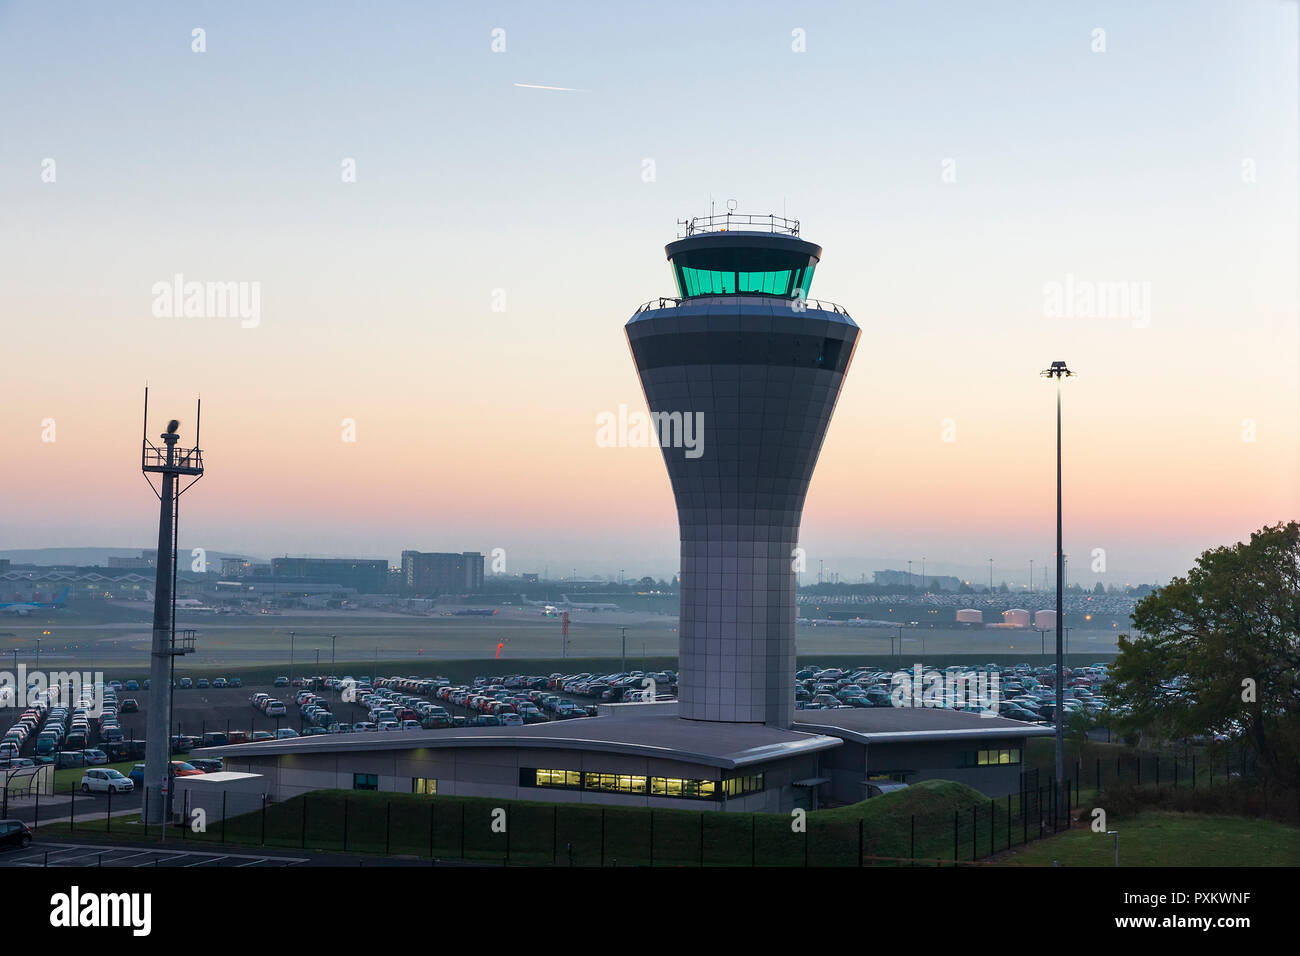 Dawn View of the Air Traffic Control Tower at Birmingham Airport in the Midlands, England, UK. - Stock Image